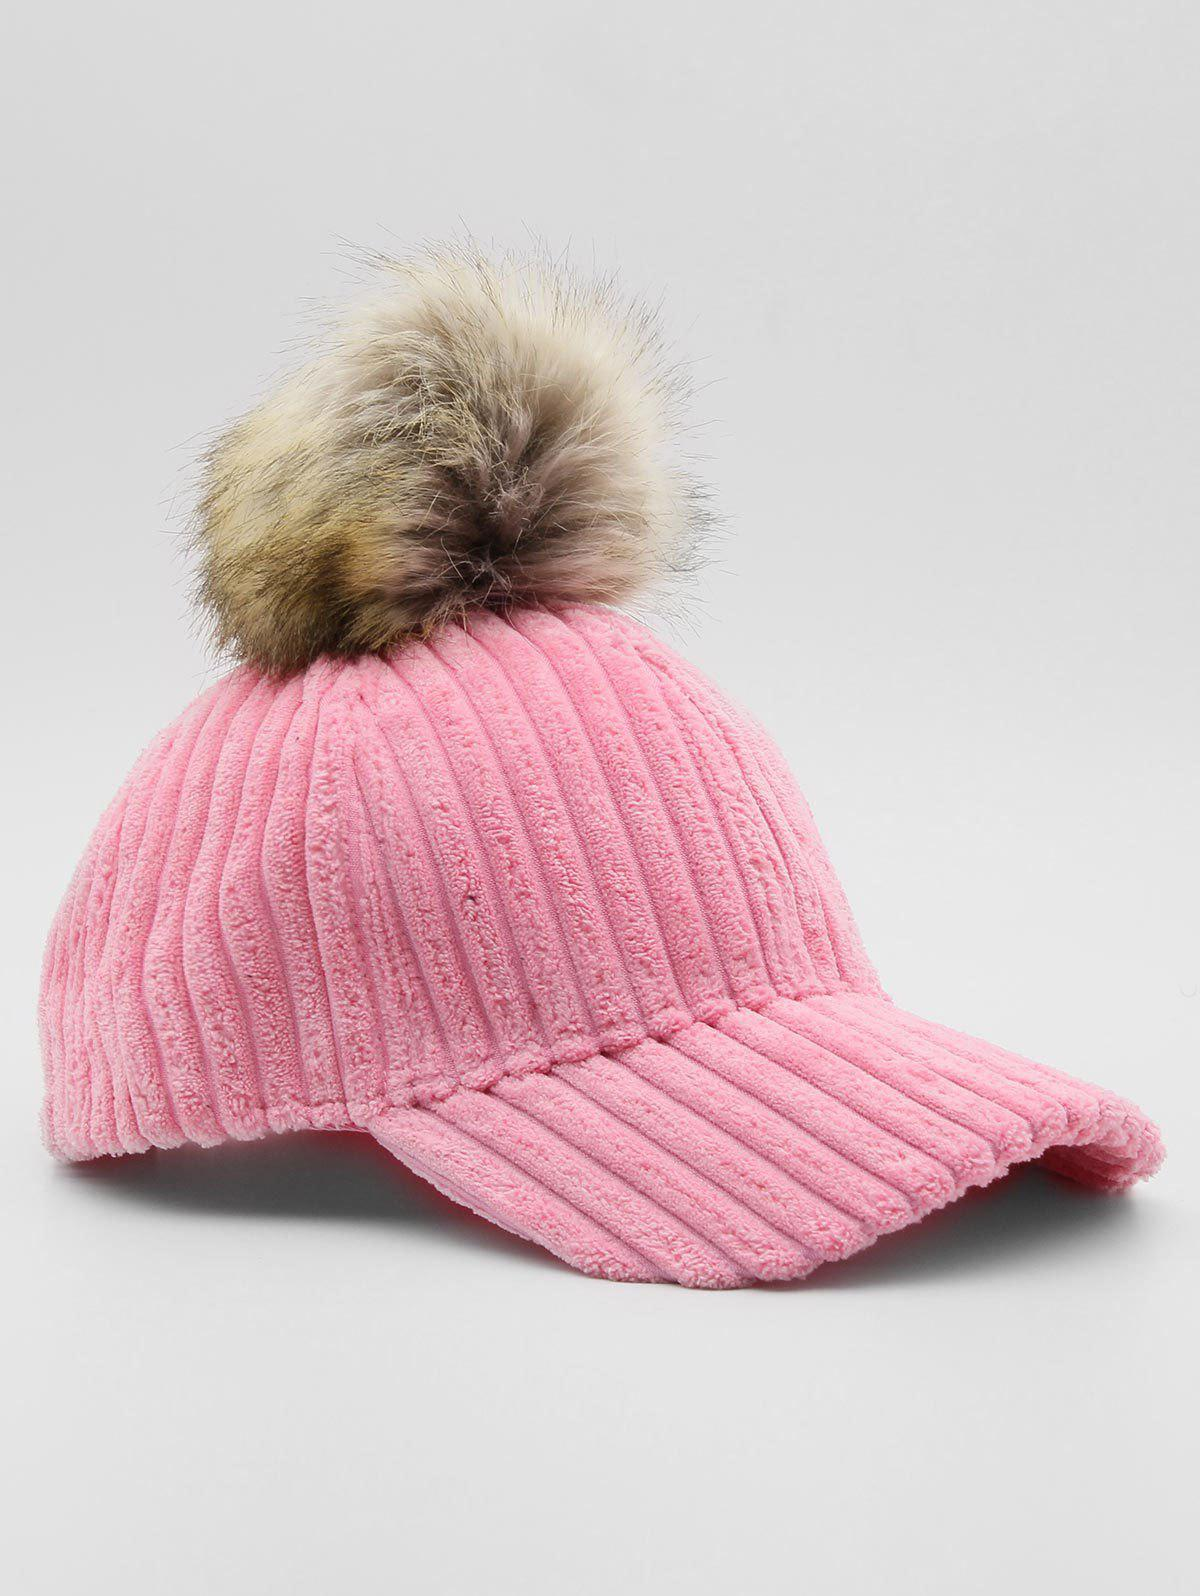 Store Winter Striped Pom Pom Baseball Cap